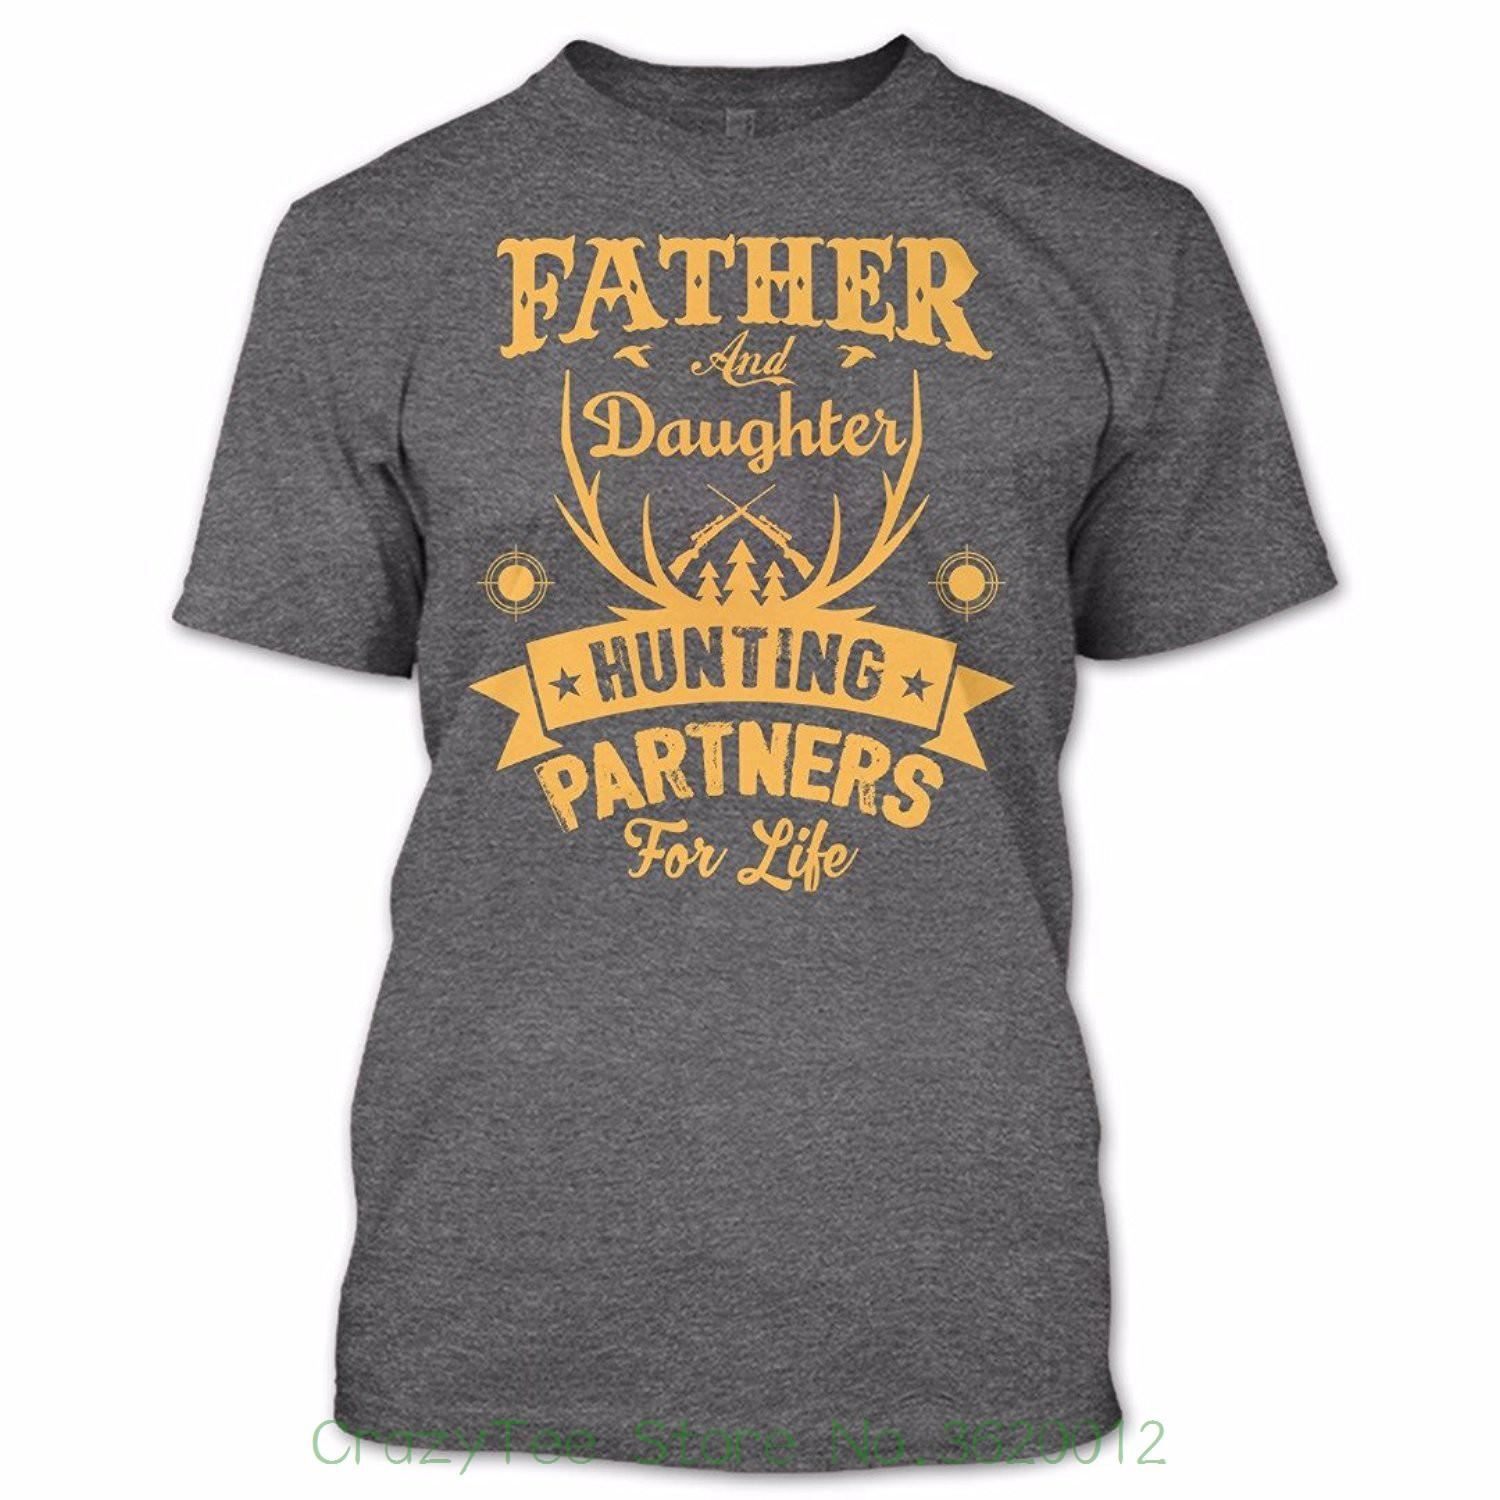 Fresh Design Summer Good Quality Father And Daughter Hunter Partners